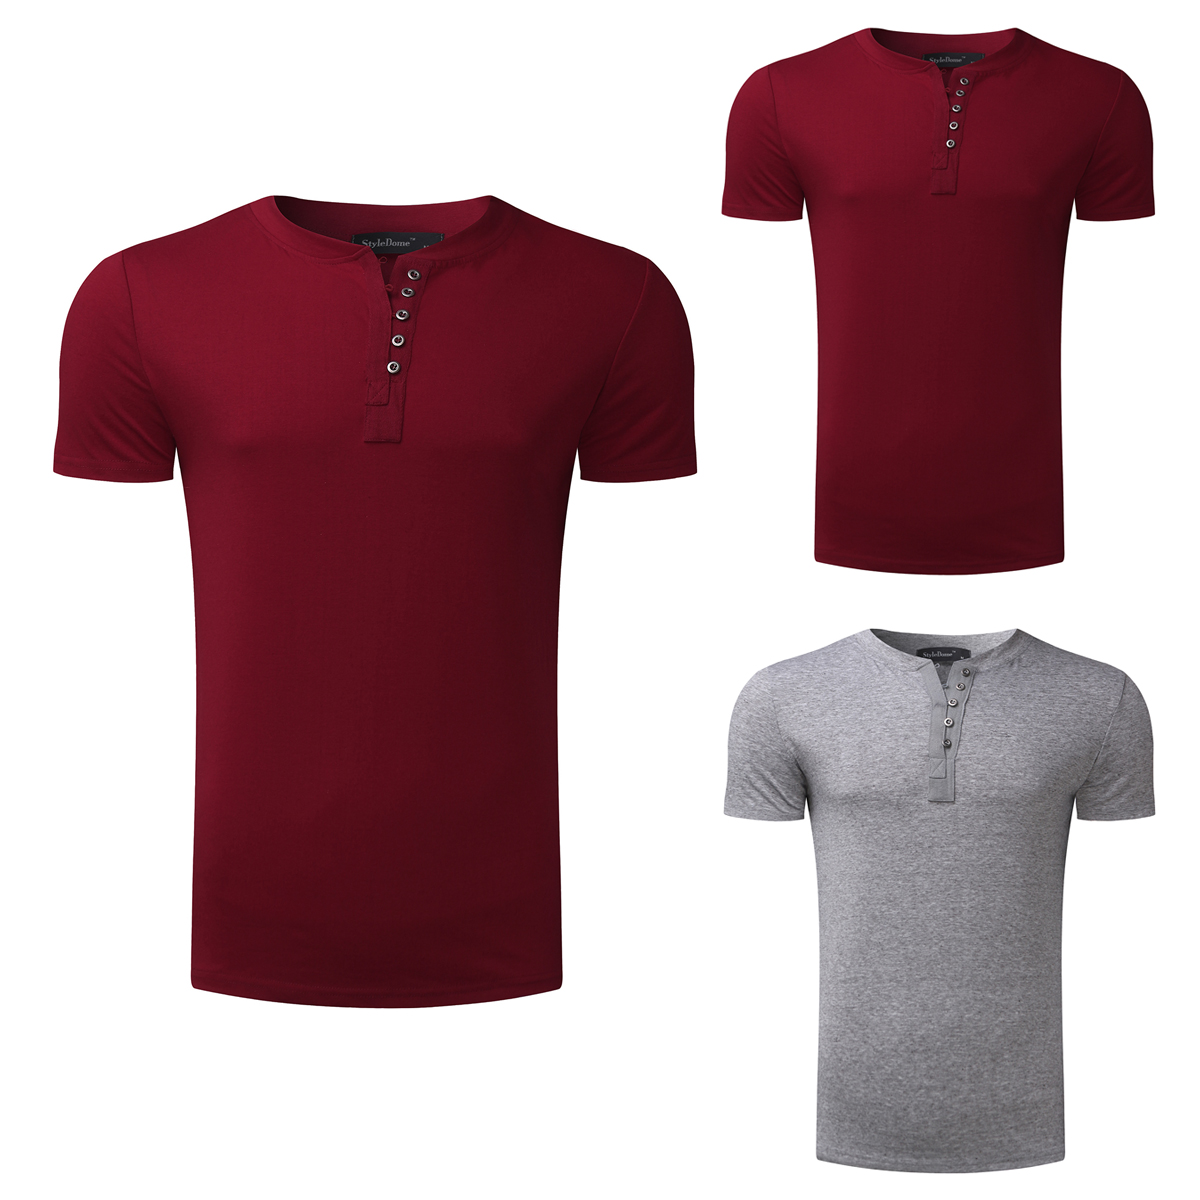 70a6ef0ef 2018 Men's T shirt Henley Shirts Casual Muscle Tee Short Sleeve Pullover  Tshirt Men Clothes Fashion Slim Fit Male Top 3XL Hombre-in T-Shirts from  Men's ...